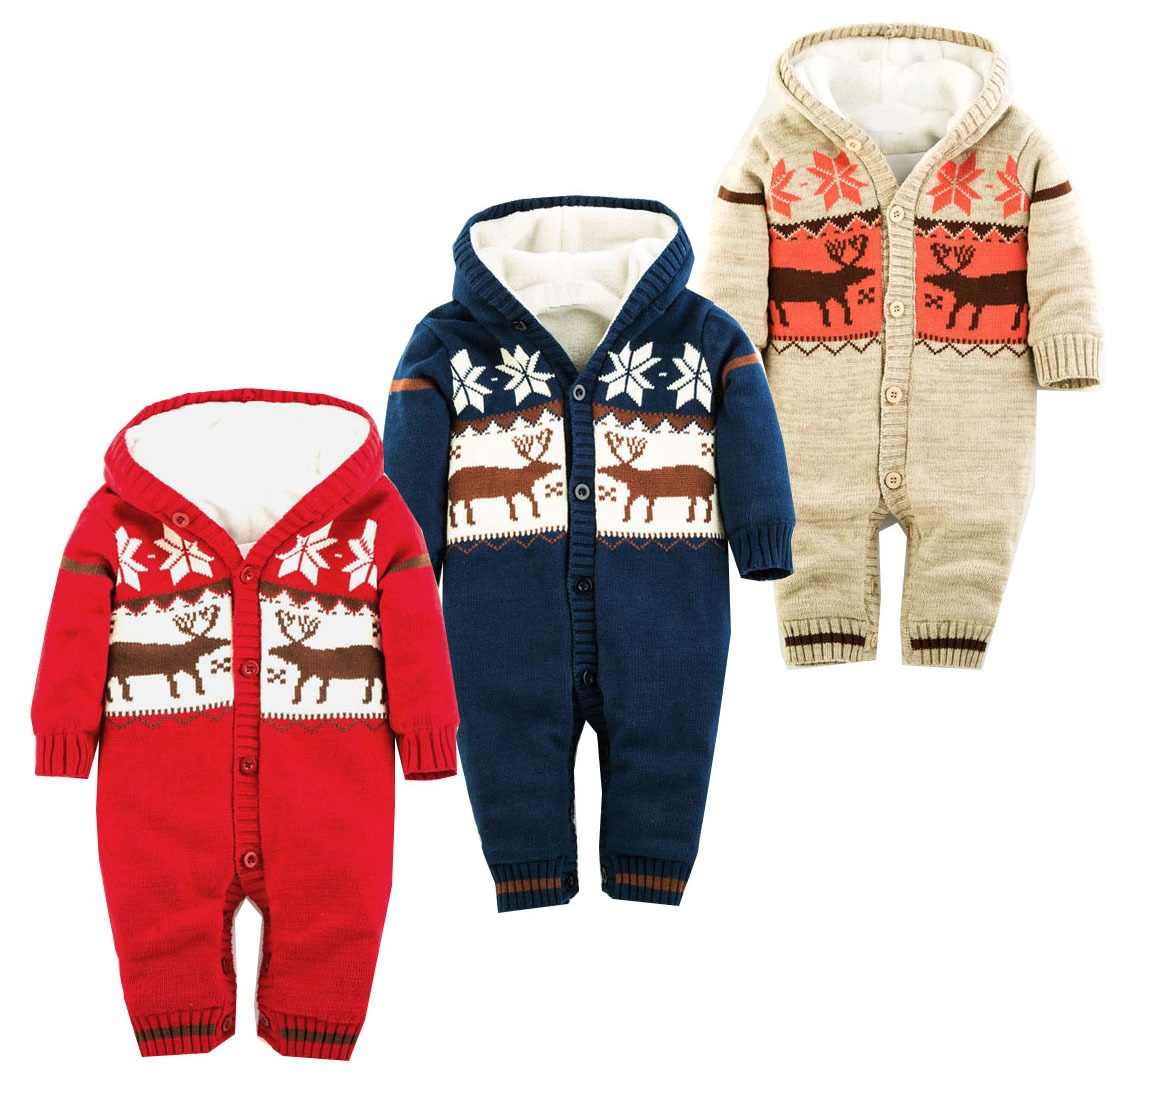 Autumn Winter Baby Romper Christmas Deer Thick Newborn Baby Clothing Hooded Baby Girl Overalls Baby Boys Clothes Infant Costume puseky 2017 infant romper baby boys girls jumpsuit newborn bebe clothing hooded toddler baby clothes cute panda romper costumes